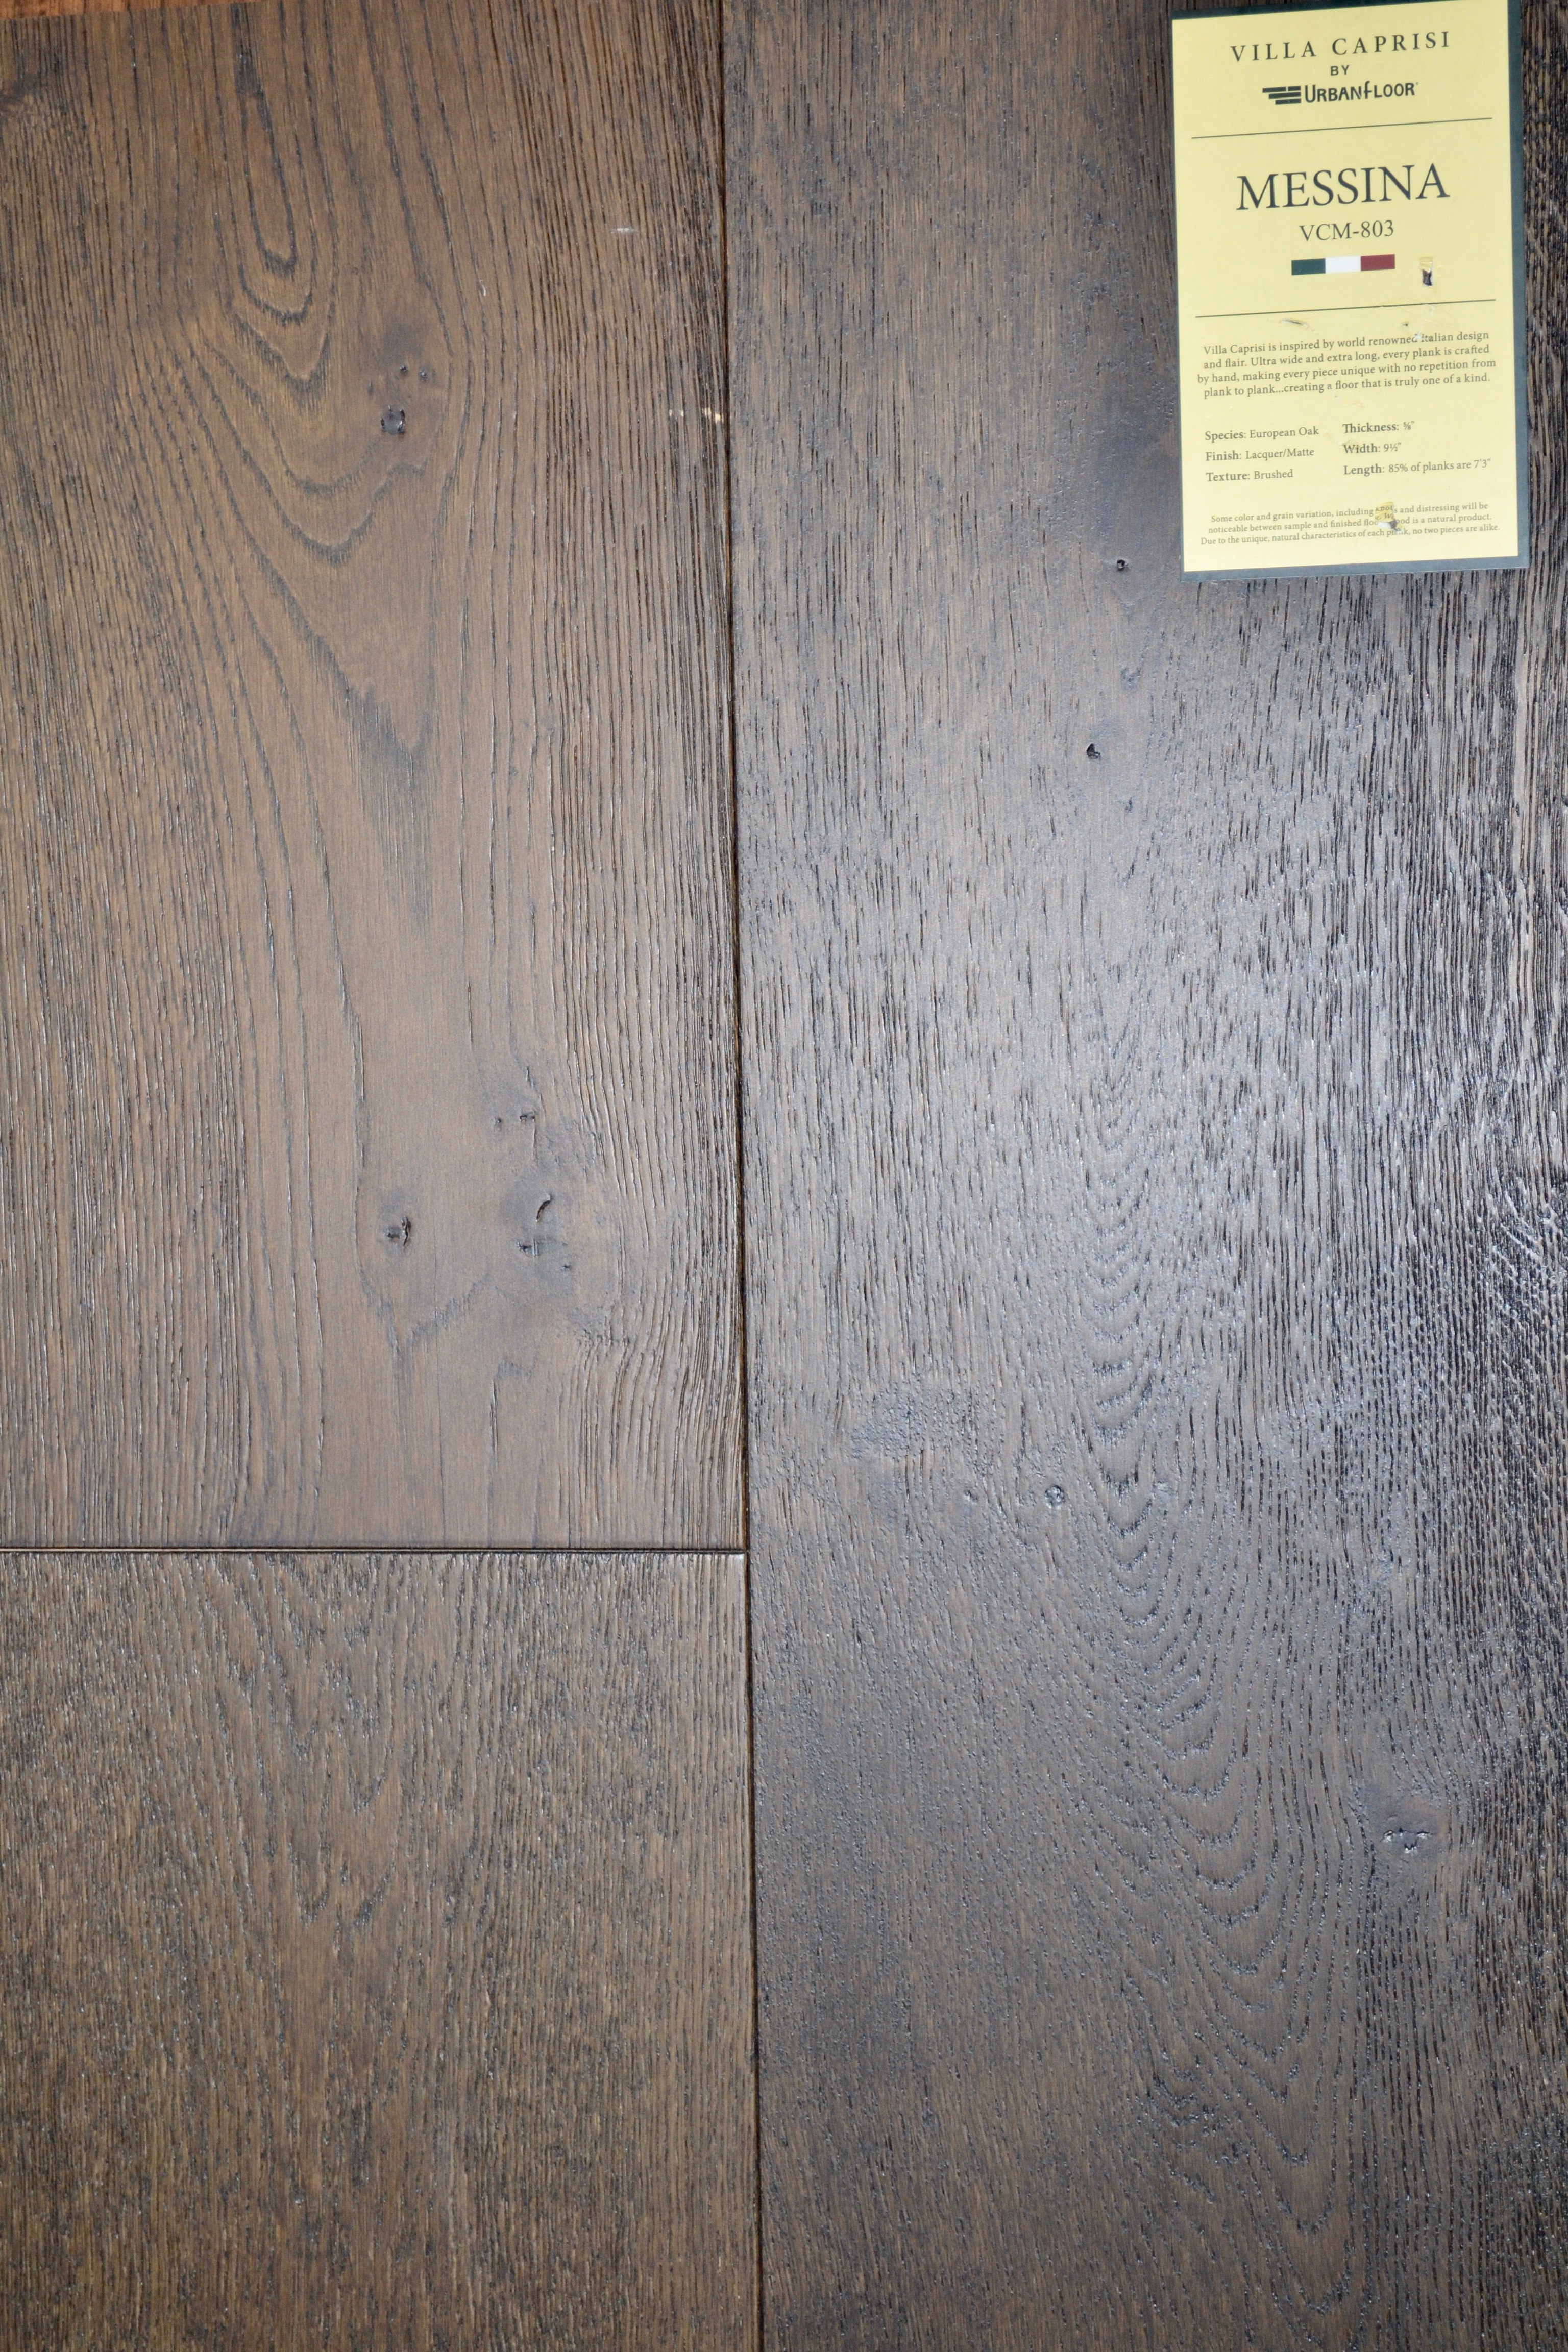 hardwood flooring stores near me of villa caprisi fine european hardwood millennium hardwood inside european style inspired designer oak floor messina by villa caprisi